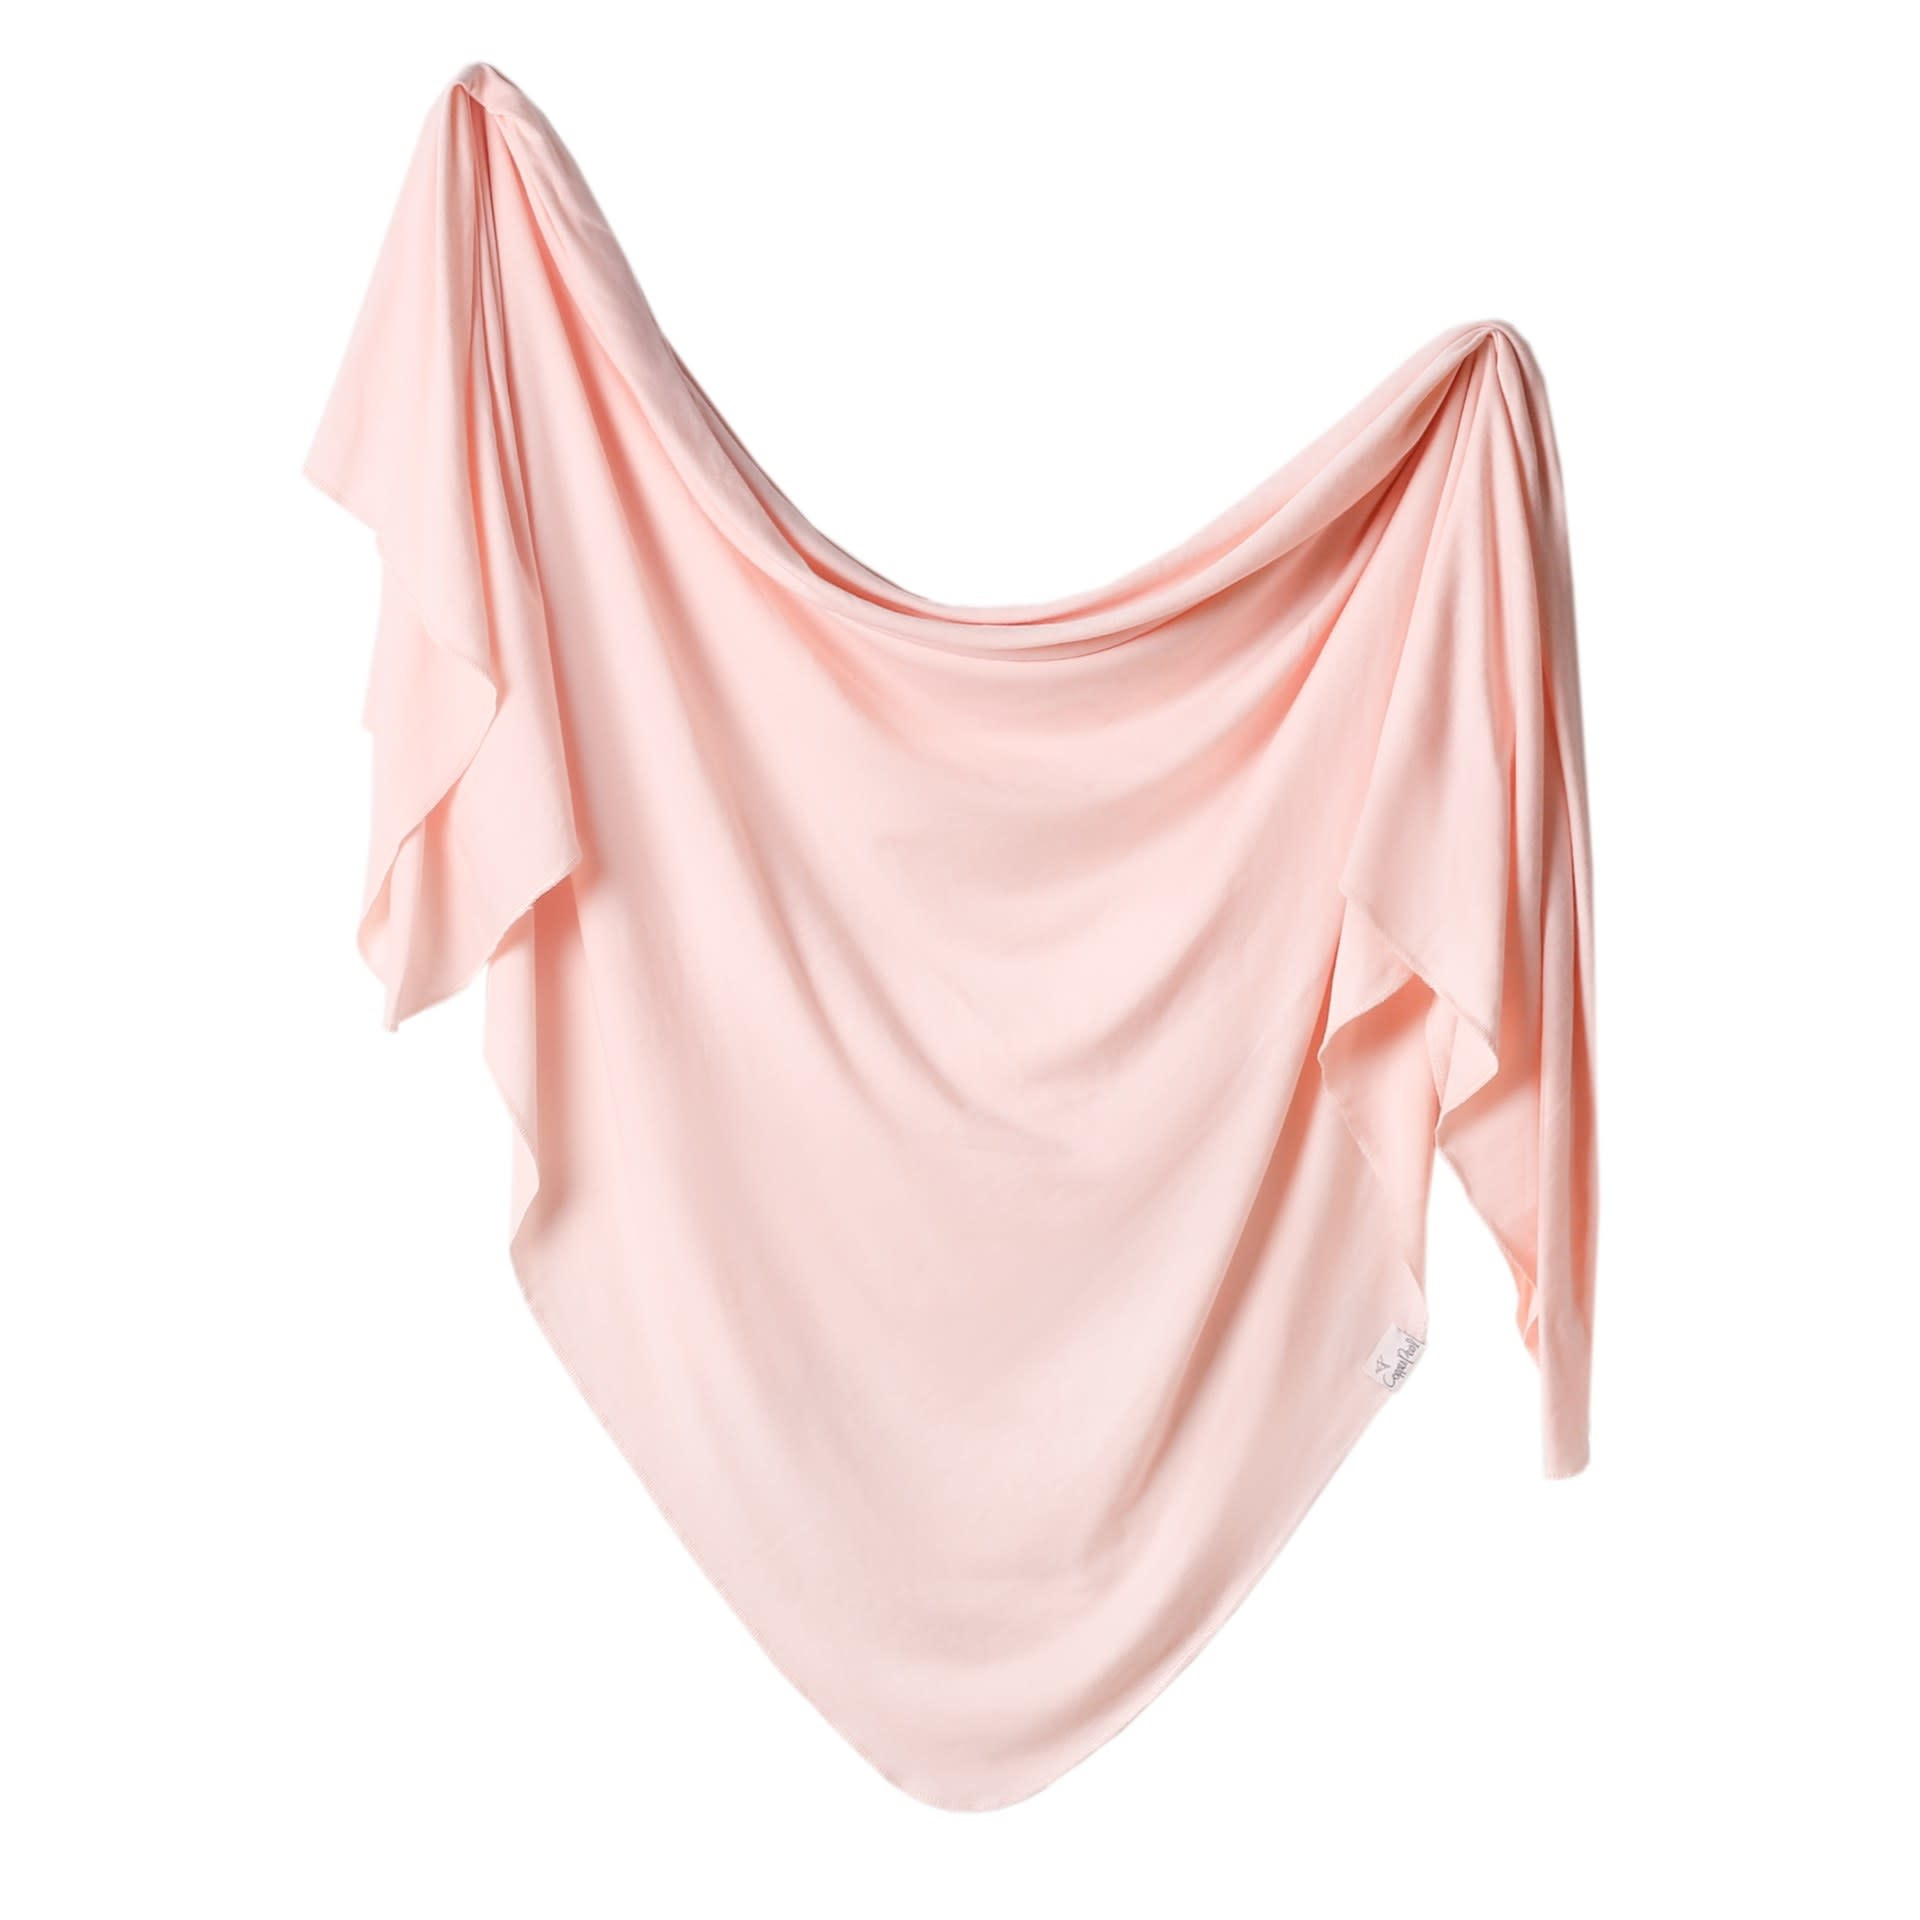 Copper Pearl Knit Blanket - Blush